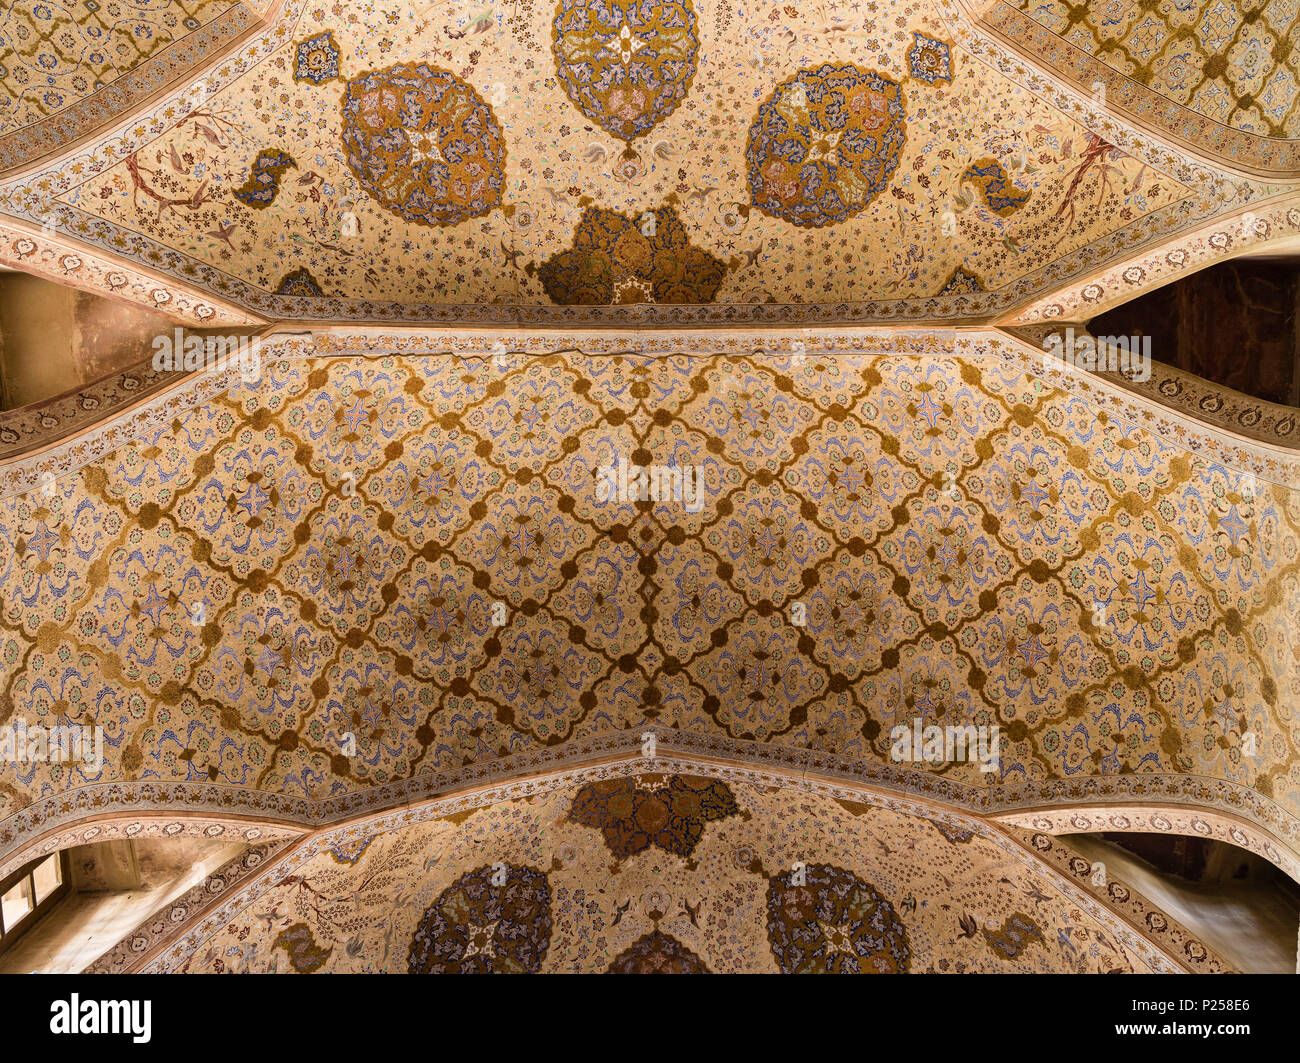 Ceiling ornament in Ali Qapu Palace in Isfahan Stock Photo